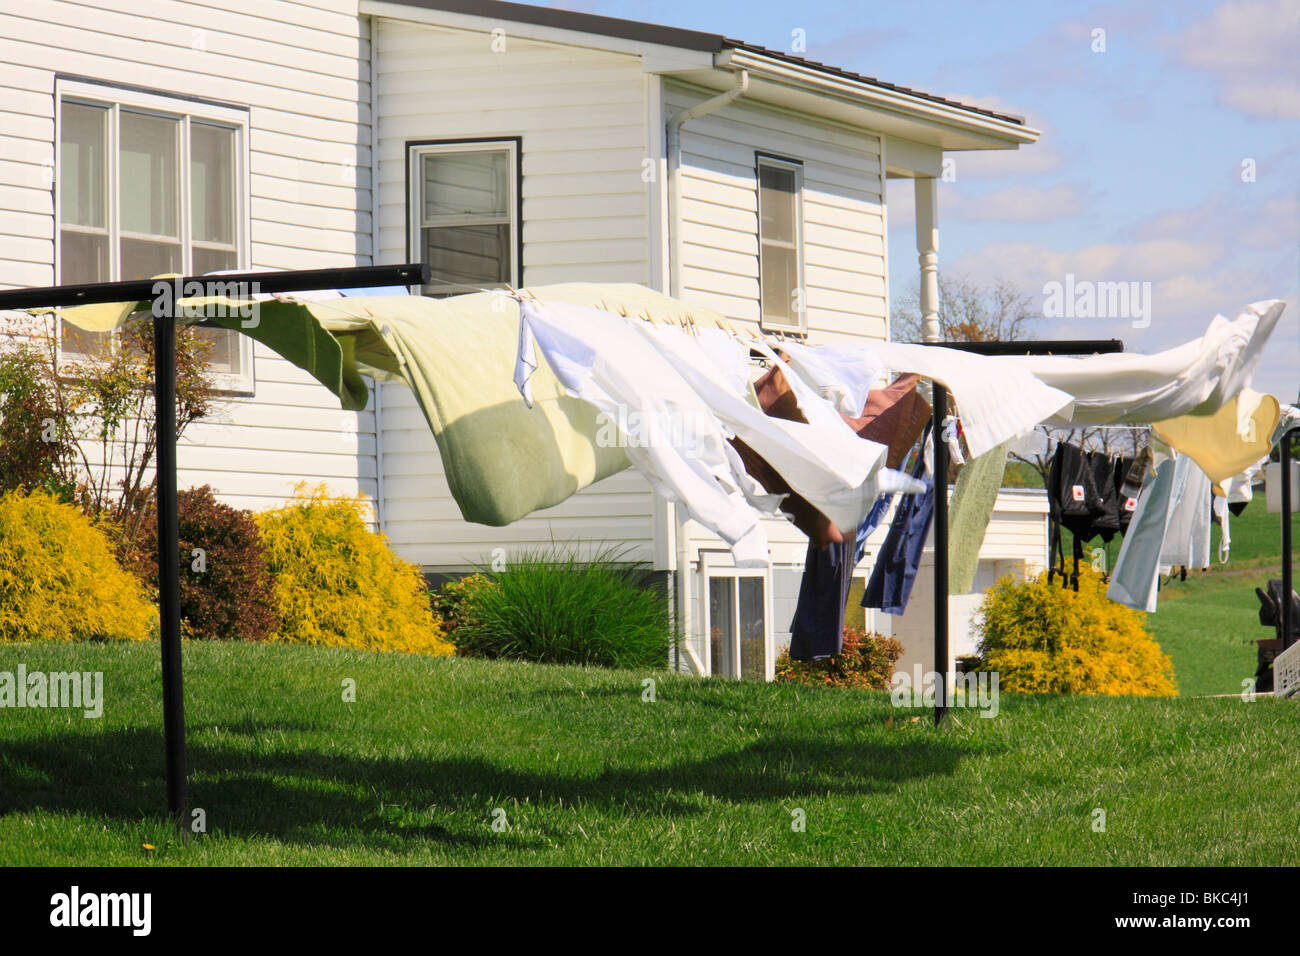 Laundry Drying in the Breeze, Mennonite Farm, Shanandoah Valley, Dayton, Virgnia, USA - Stock Image